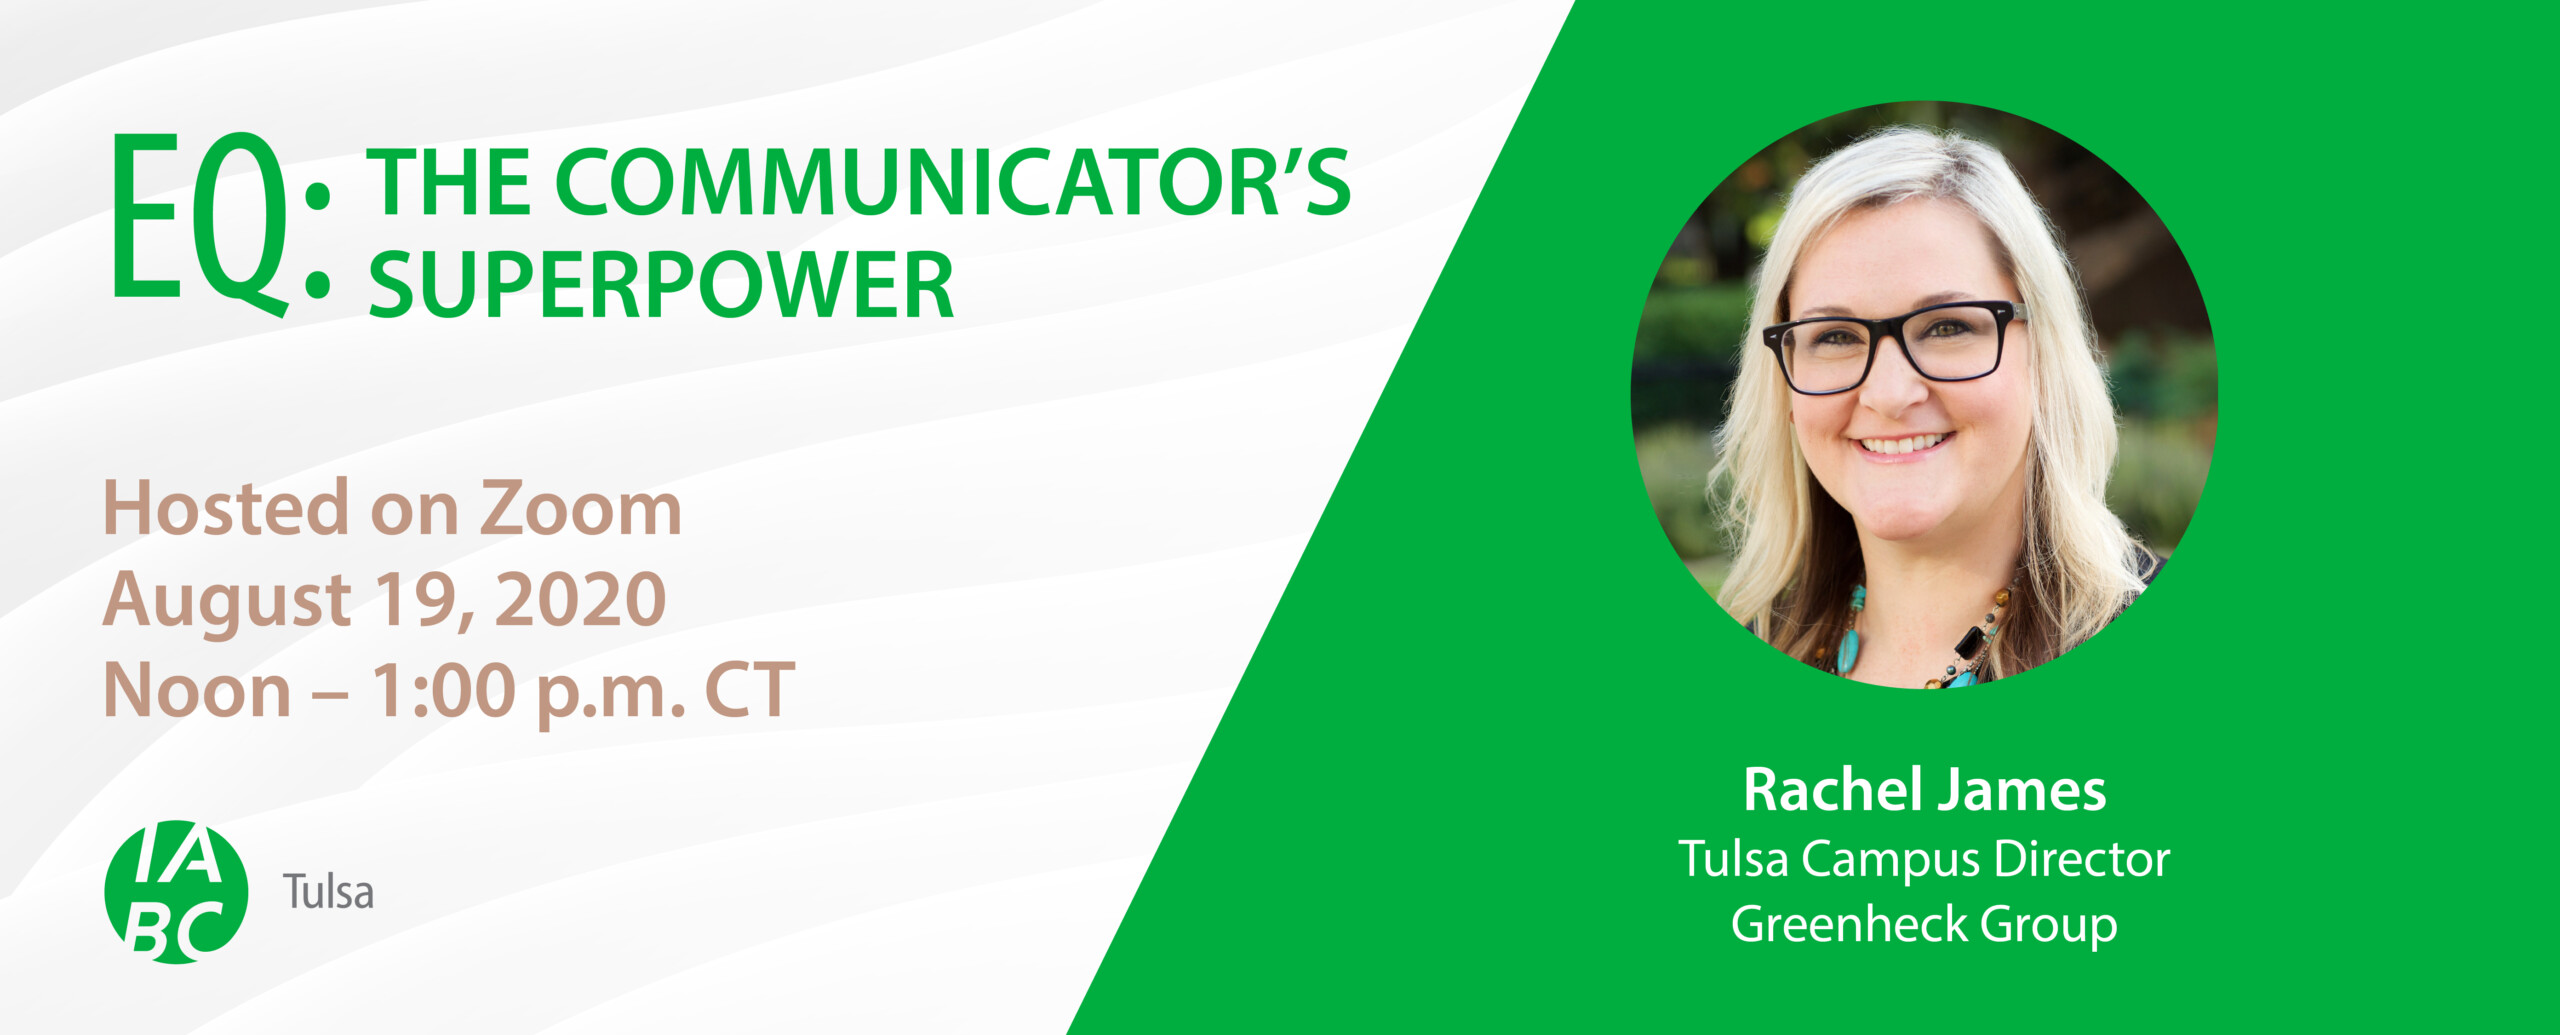 EQ: The Communicator's Superpower Hosted on Zoom August 19, 2020 Noon - 1 p.m. CT Rachel James Tulsa Campus Director Greenheck Group